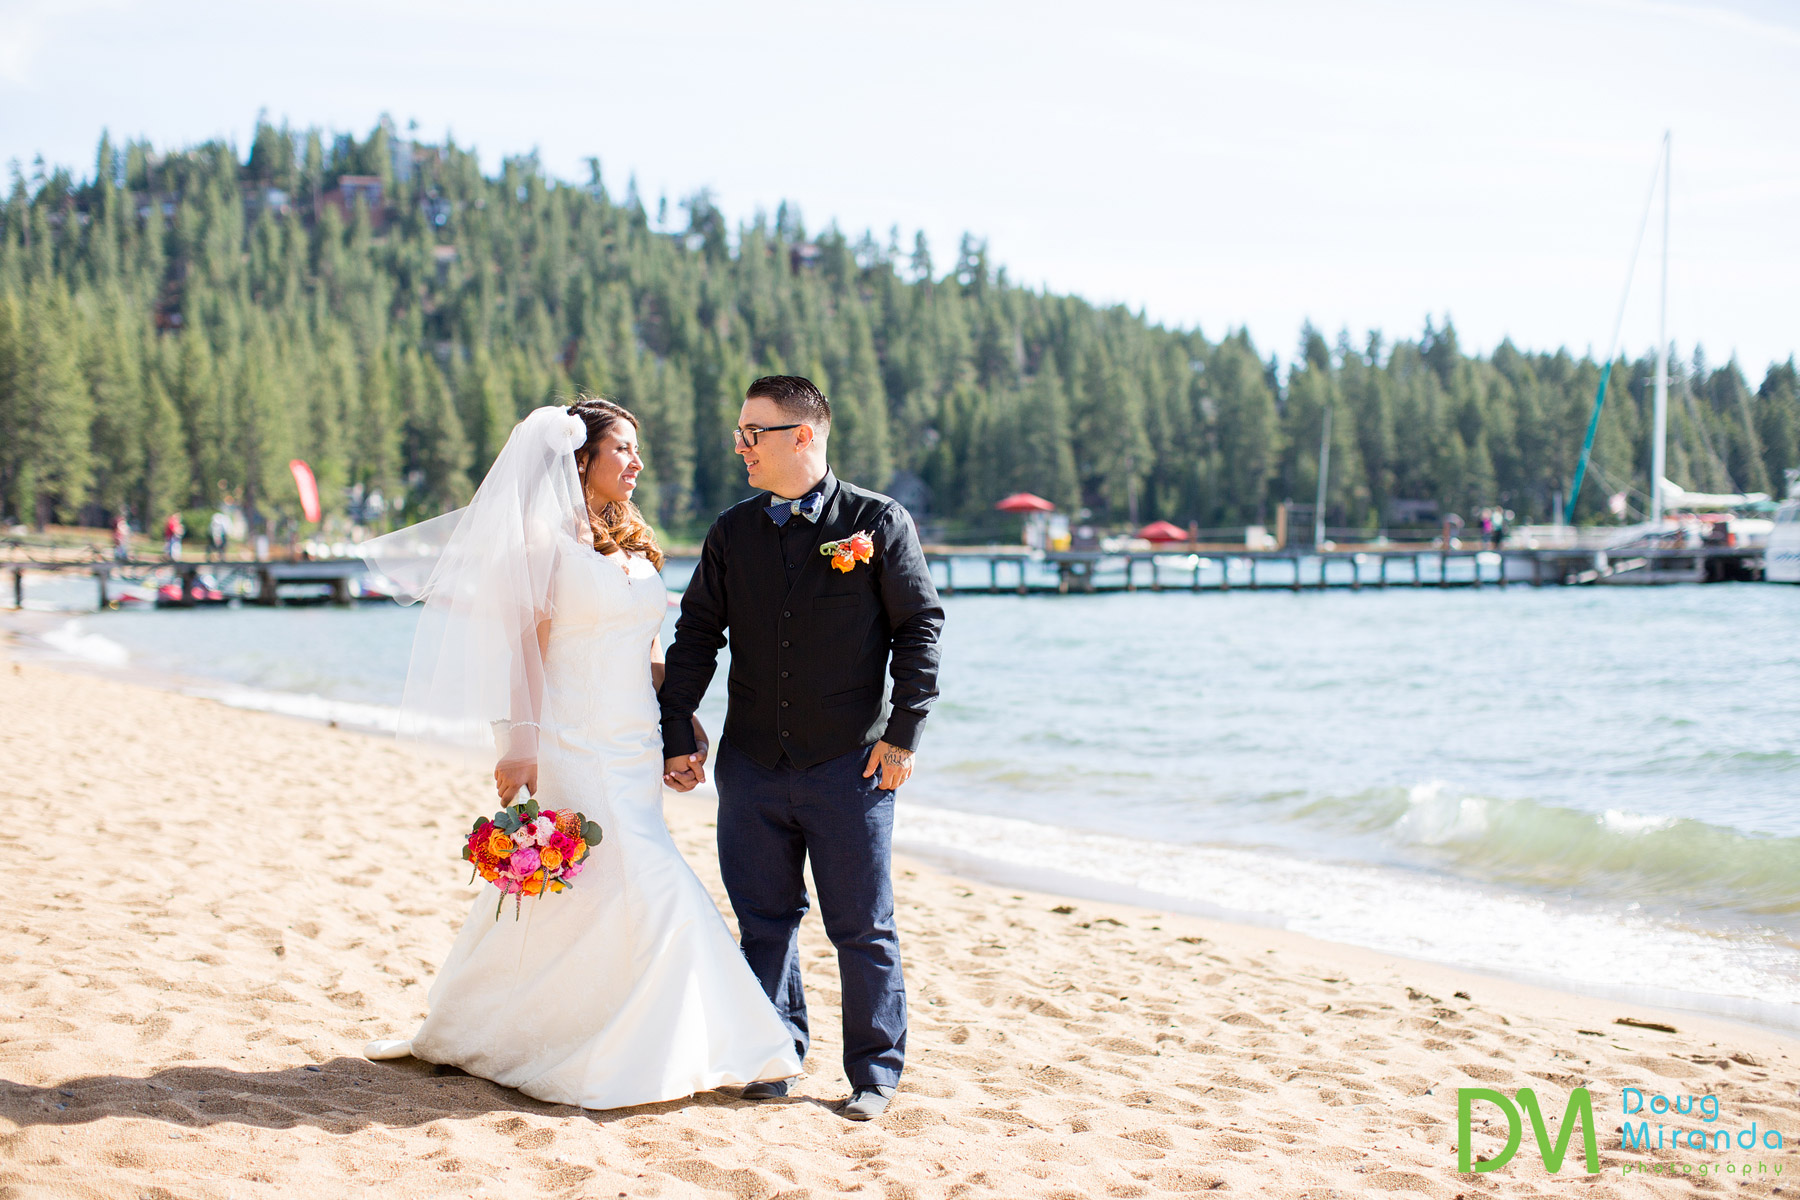 zephyr cove resort wedding photography